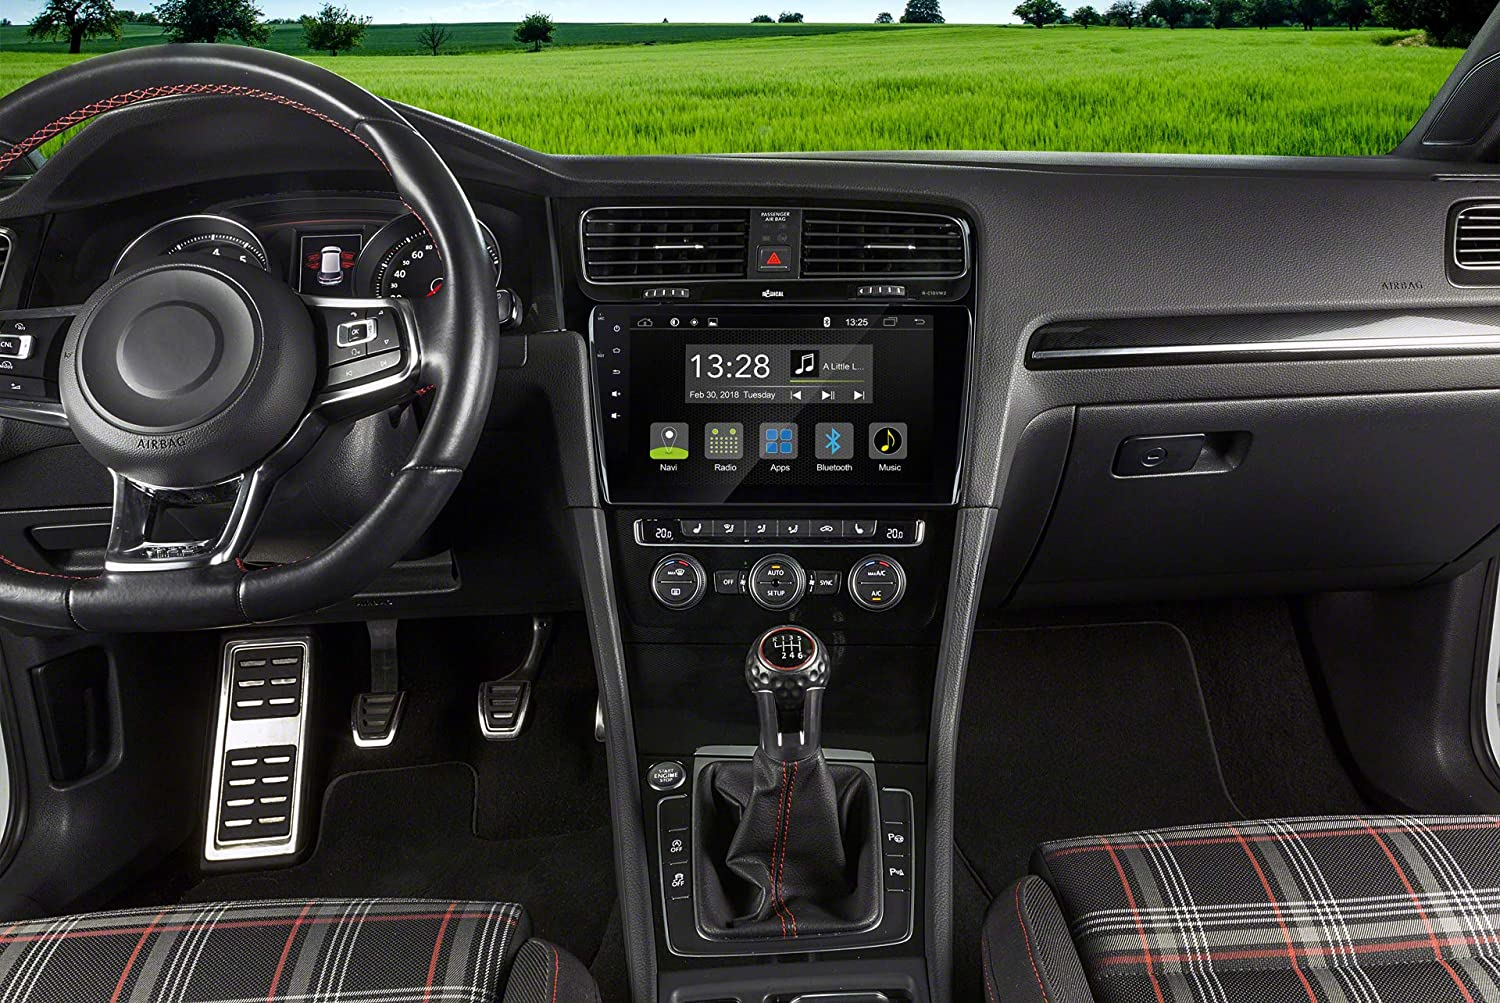 "Autoradio f/ür VW Golf5+6 mit 7.1 Android OS Unterst/ützt OPS Klimastatus Lenkradfernbedienung FM Radio Bluetooth USB EasyConnect Radical R-C10VW1 mit 9/"" Touchscreen vorbereitet f/ür Navigation"